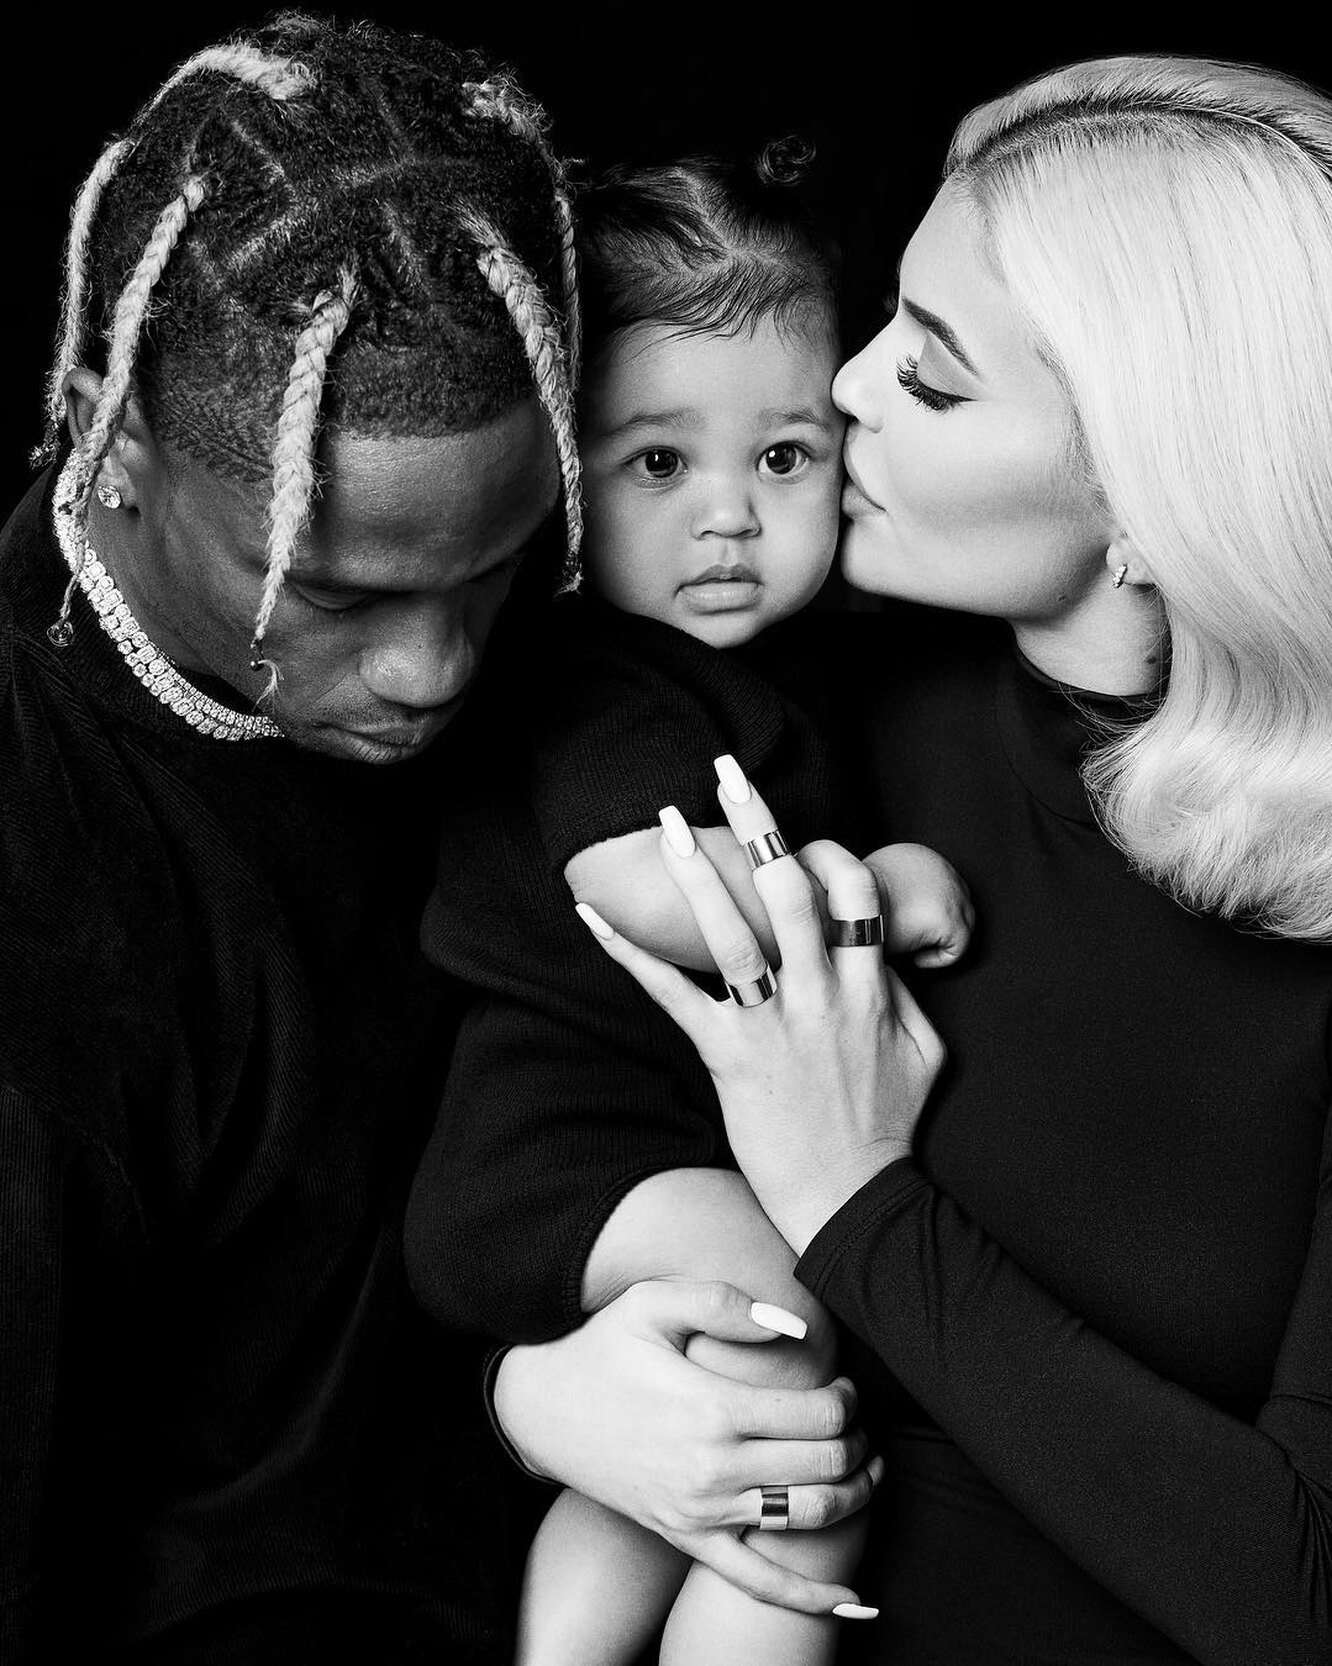 Kylie Jenner officially announced that she is expecting her second child